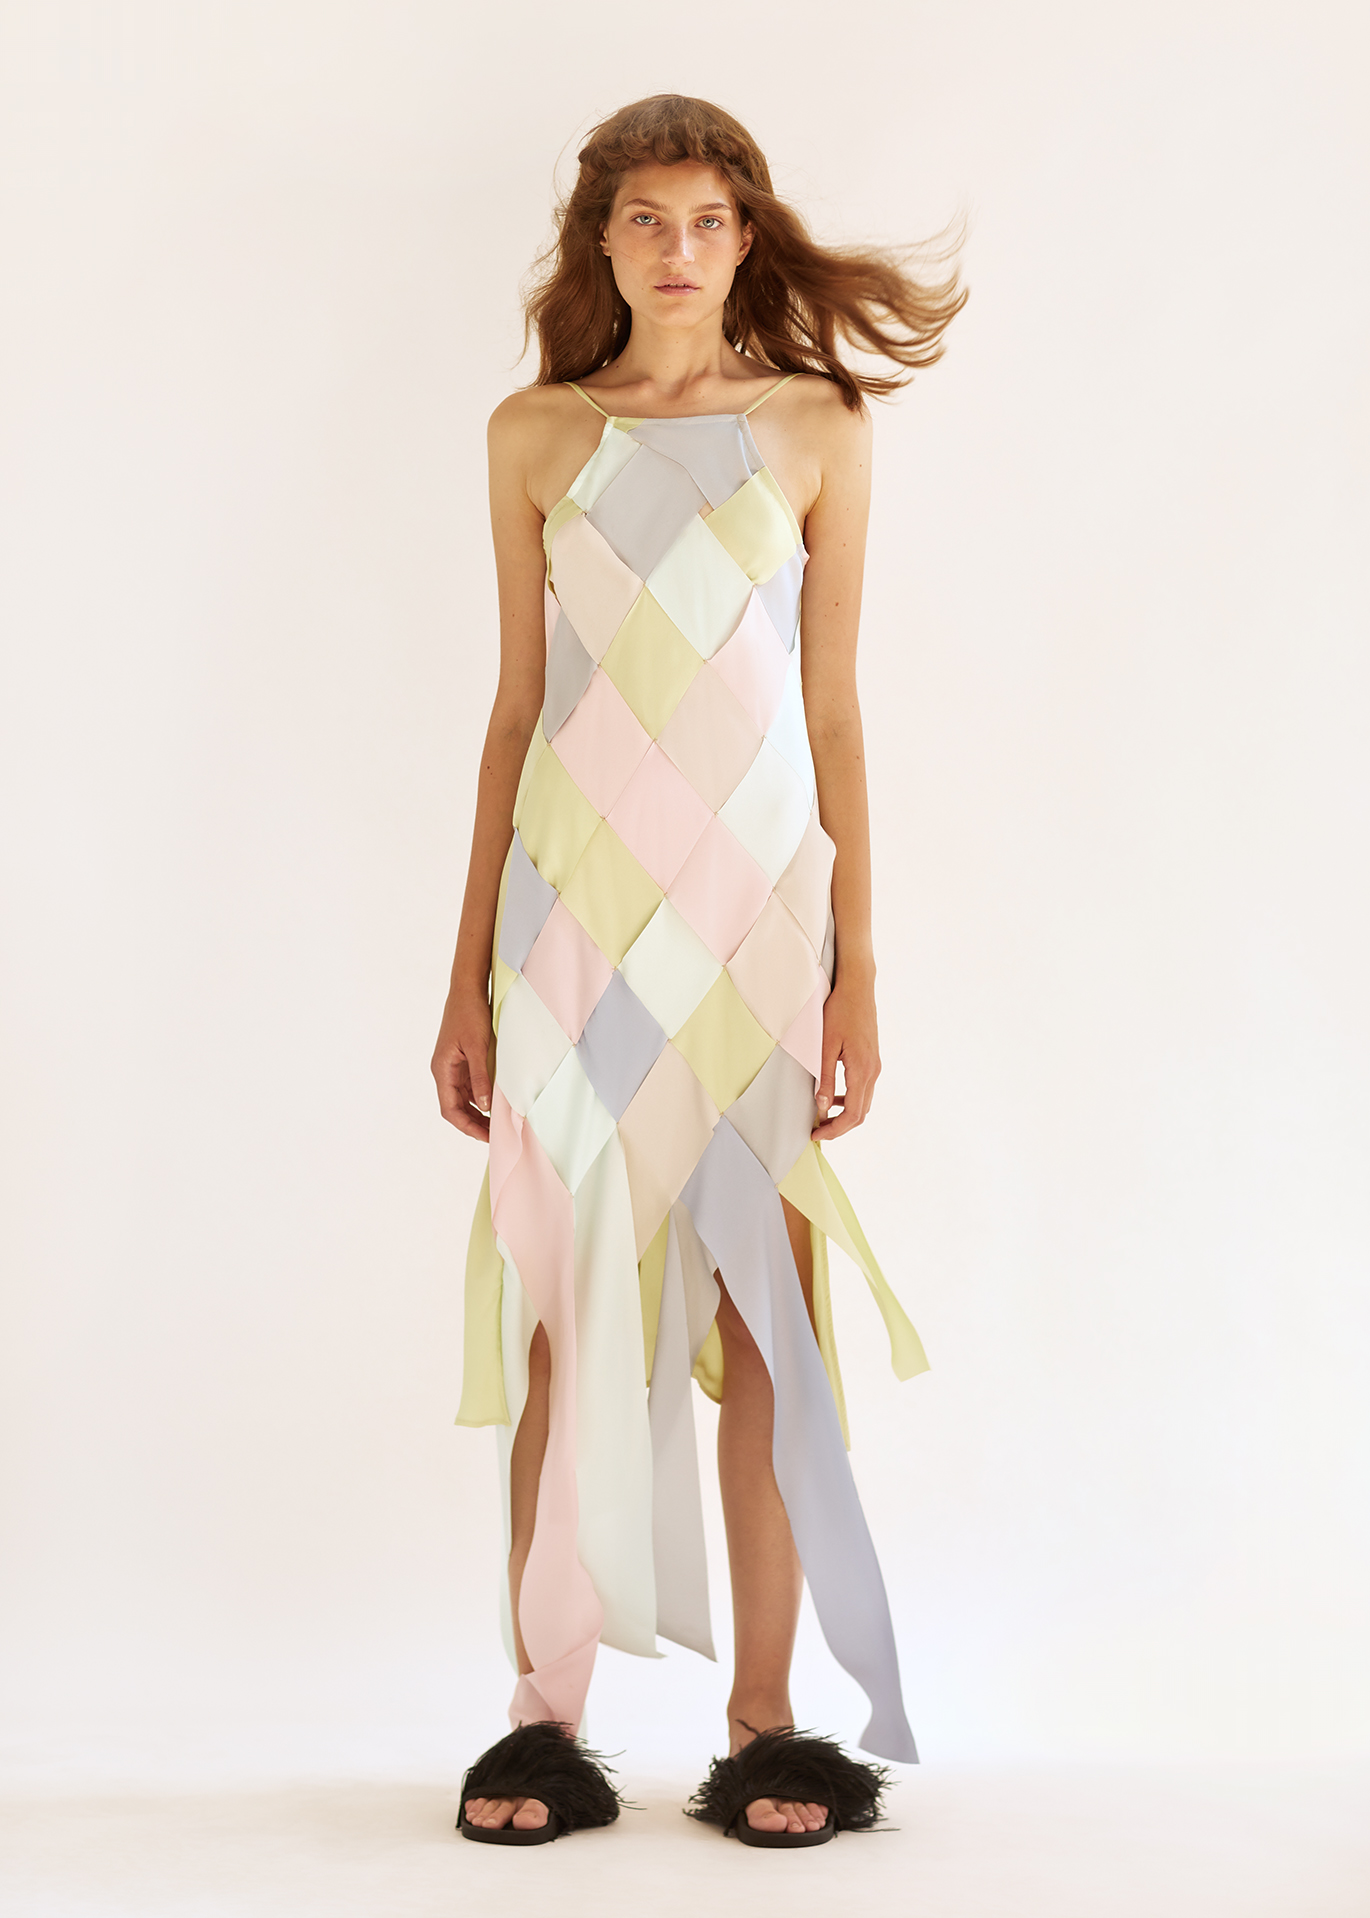 Natalia Laser Cut Dress by Naya Rea on curated-crowd.com